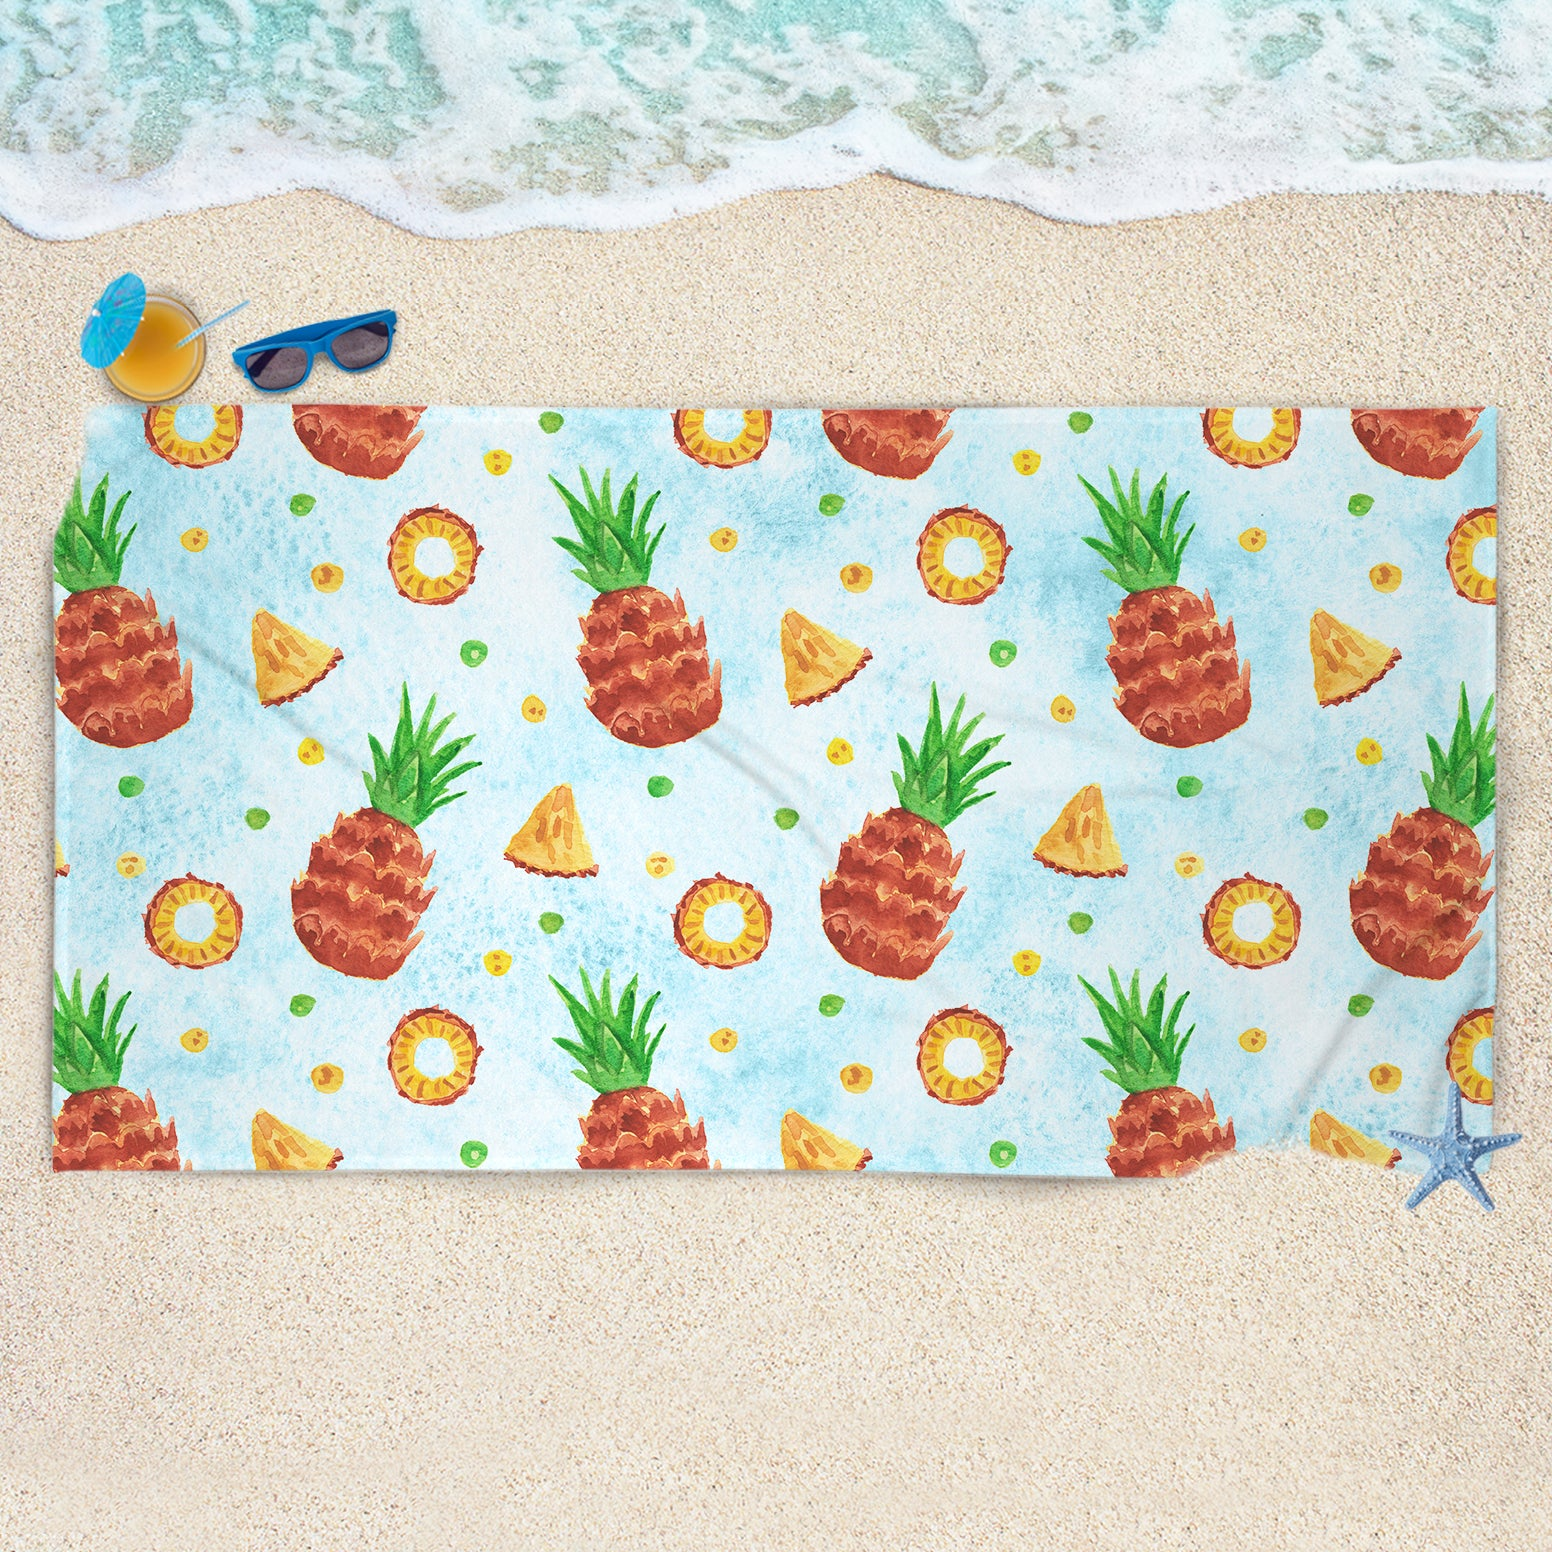 Pineapple Beach Towel - Huge Beach Towel | Brandless Artist